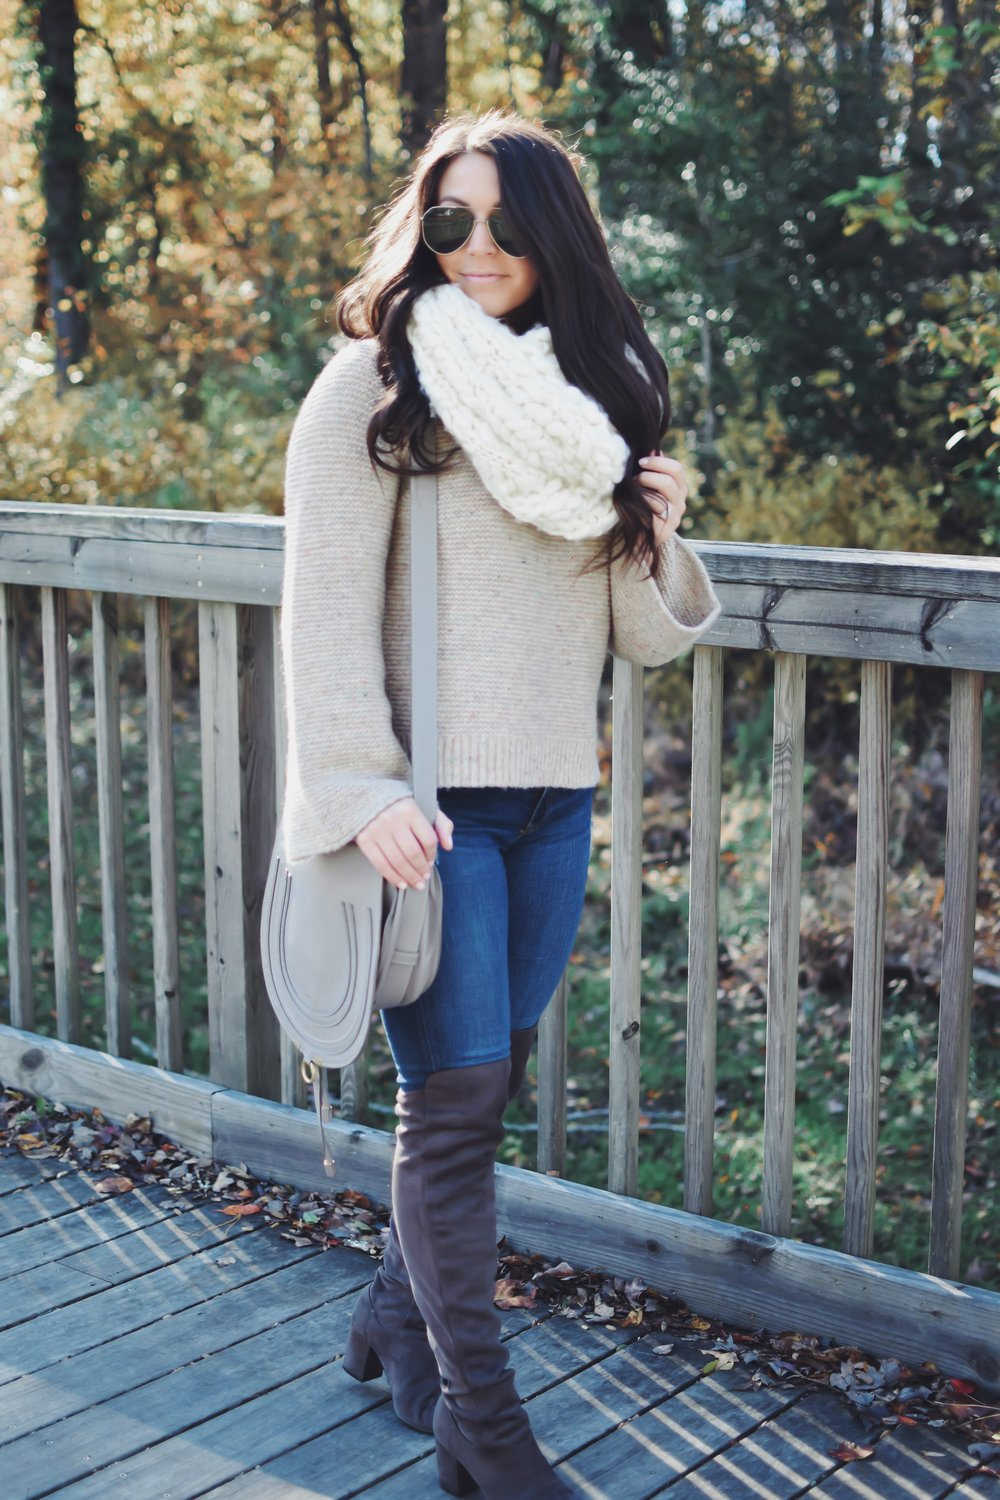 The Perfect Fall Outfit | Pine Barren Beauty | madewell sweater, free people scarf, ag jeans, over the knee boots, fall outfit idea, fall outfit inspiration